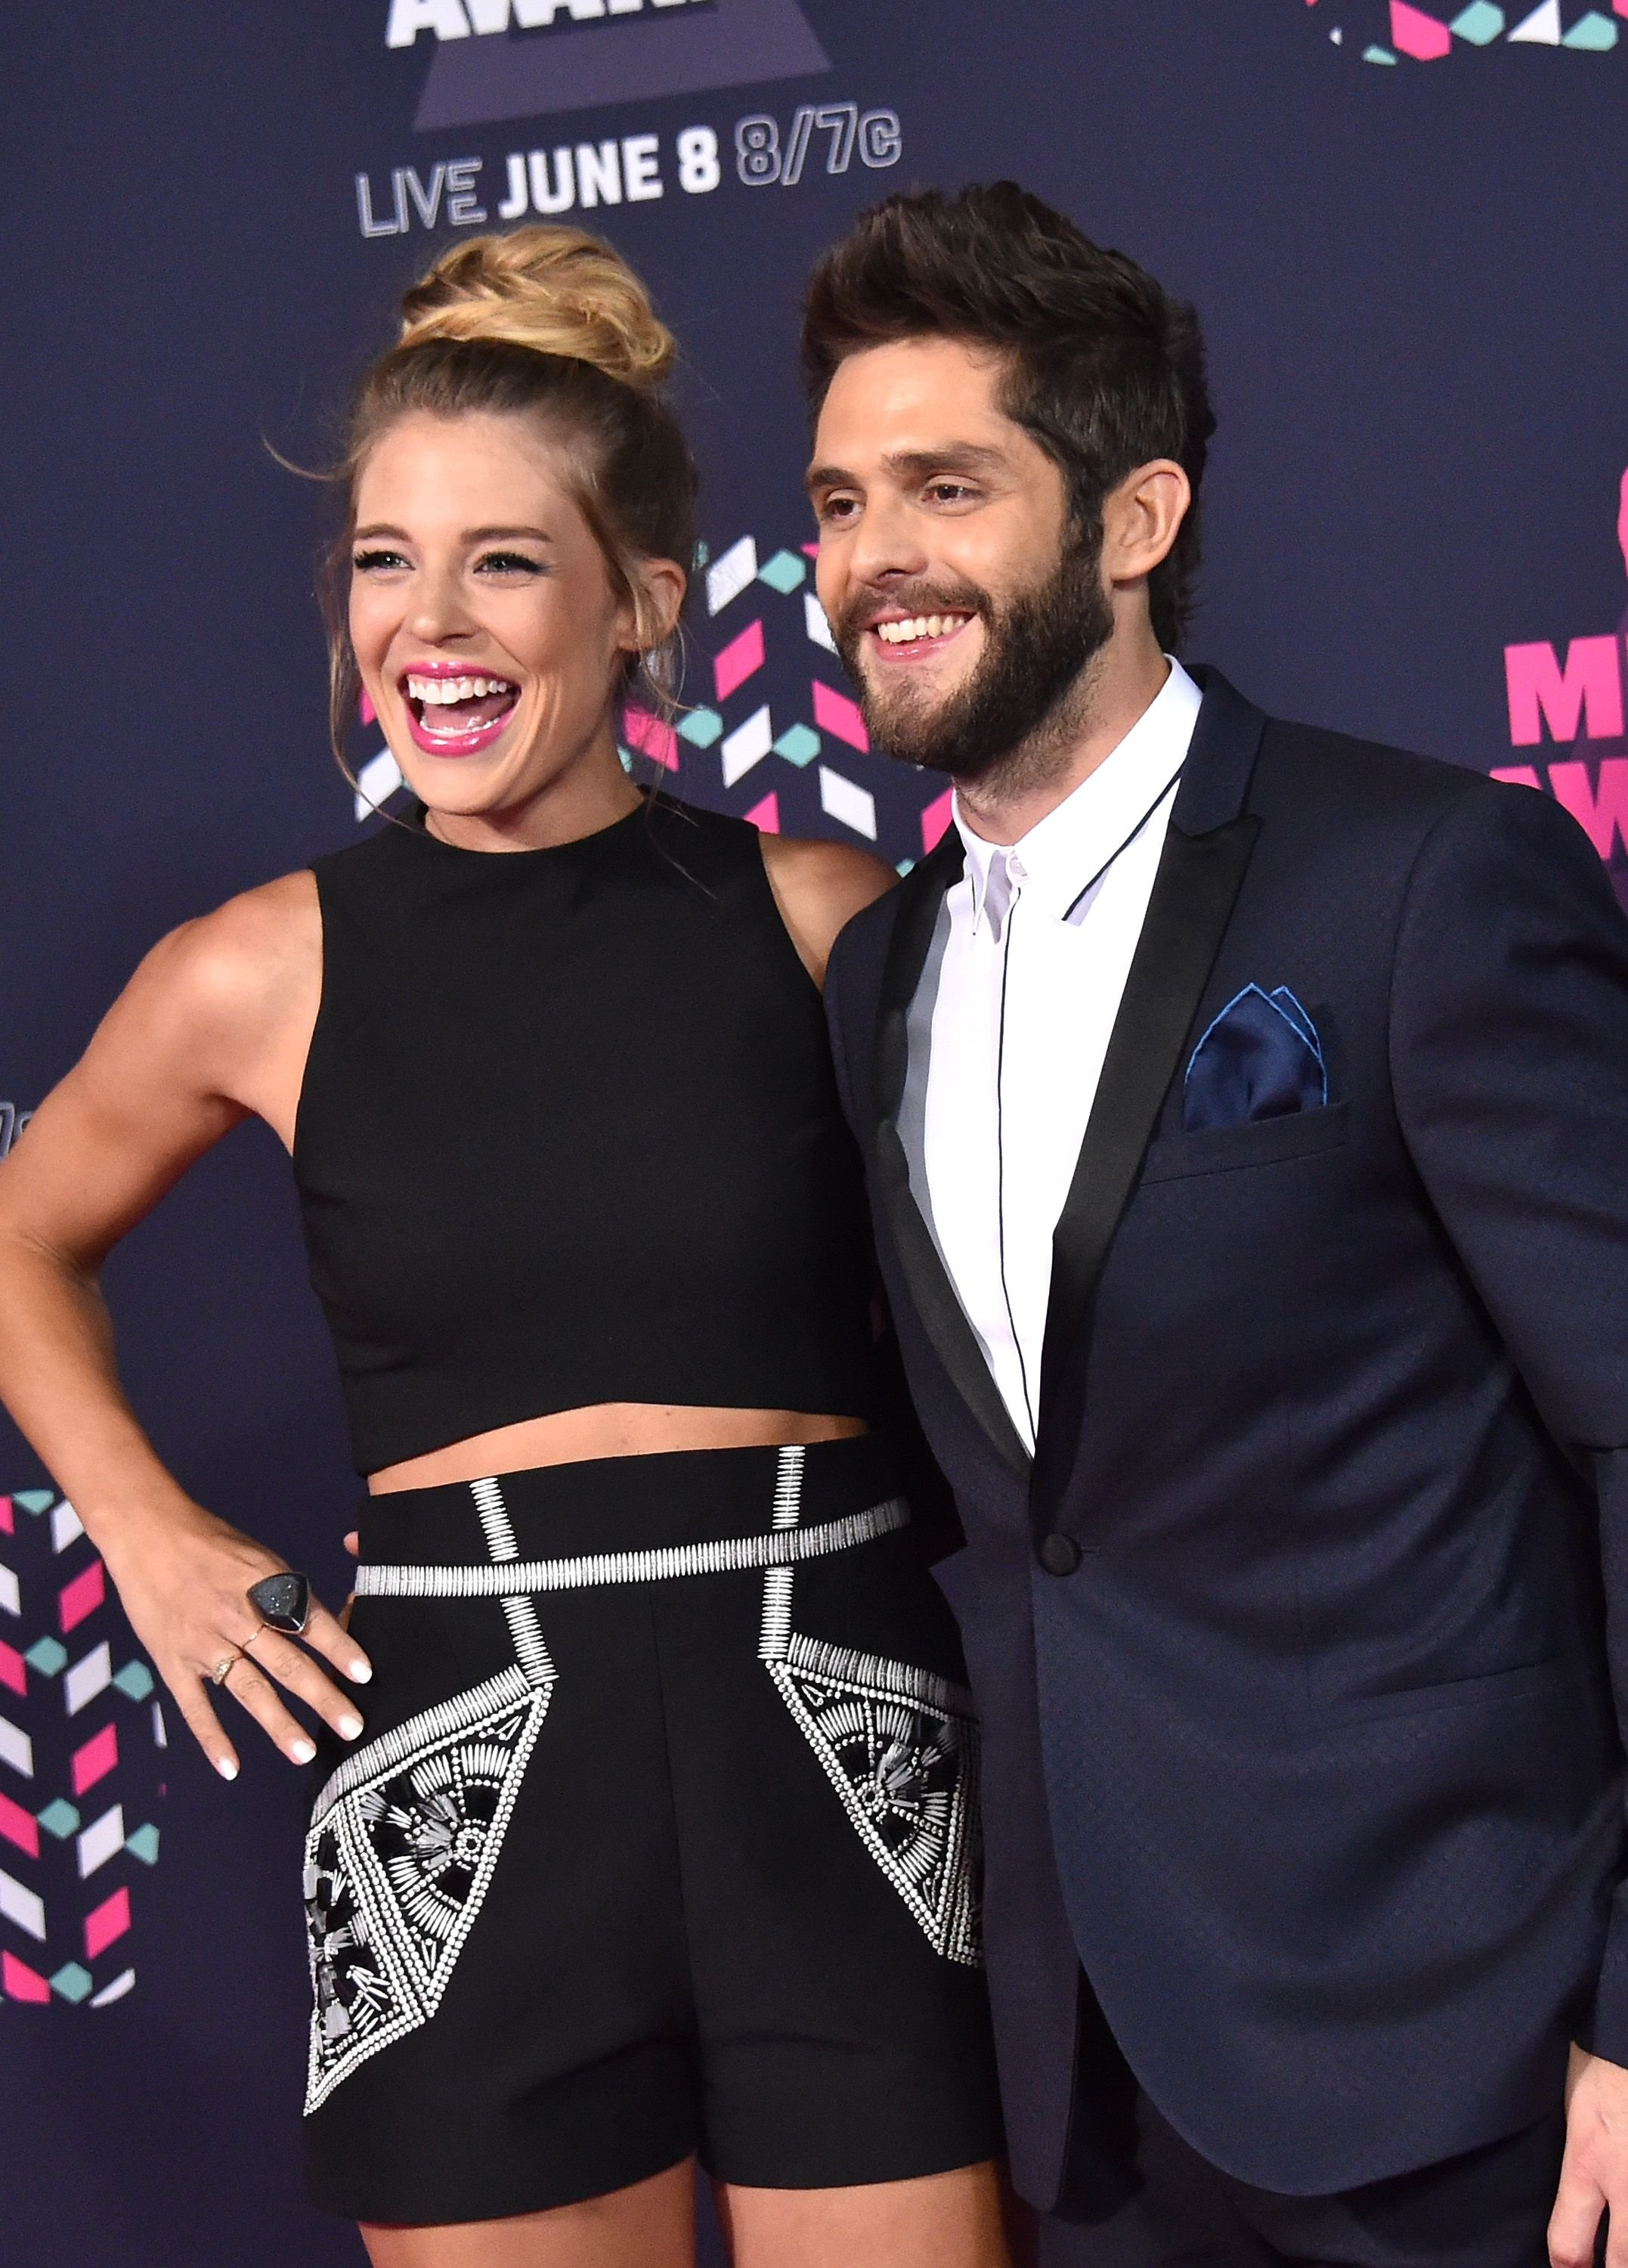 Thomas Rhett and wife Lauren attends the 2016 CMT Music awards at the Bridgestone Arena on June 8, 2016 in Nashville, Tennessee. | Photo: Getty Images